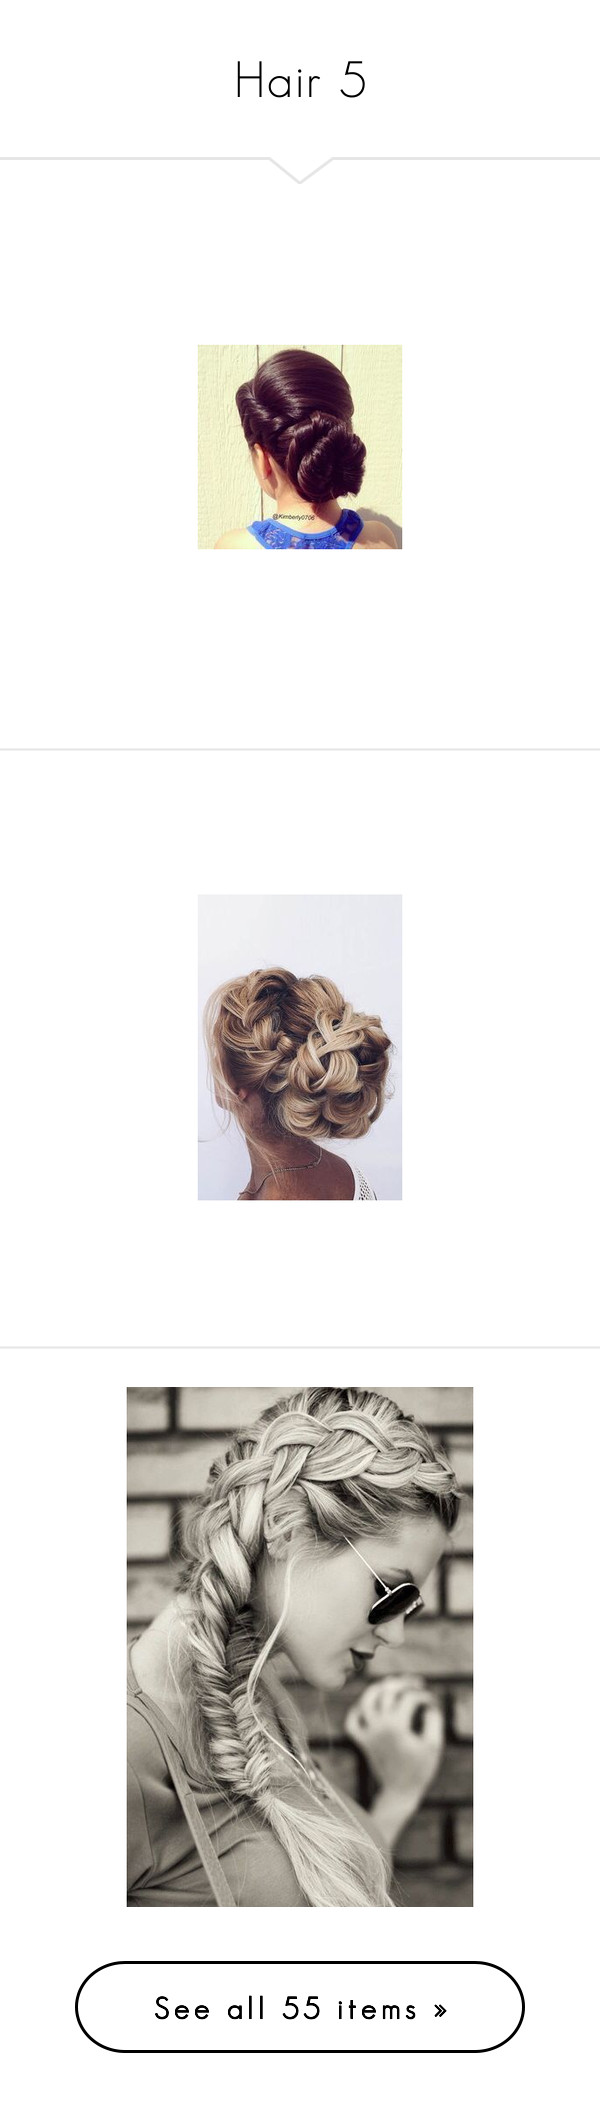 """""""Hair 5"""" by godgirl18 ❤ liked on Polyvore featuring beauty products, haircare, hair styling tools, hair, long hair accessories, accessories, hair accessories, hairstyles, bride hair accessories and bridal hair accessories"""